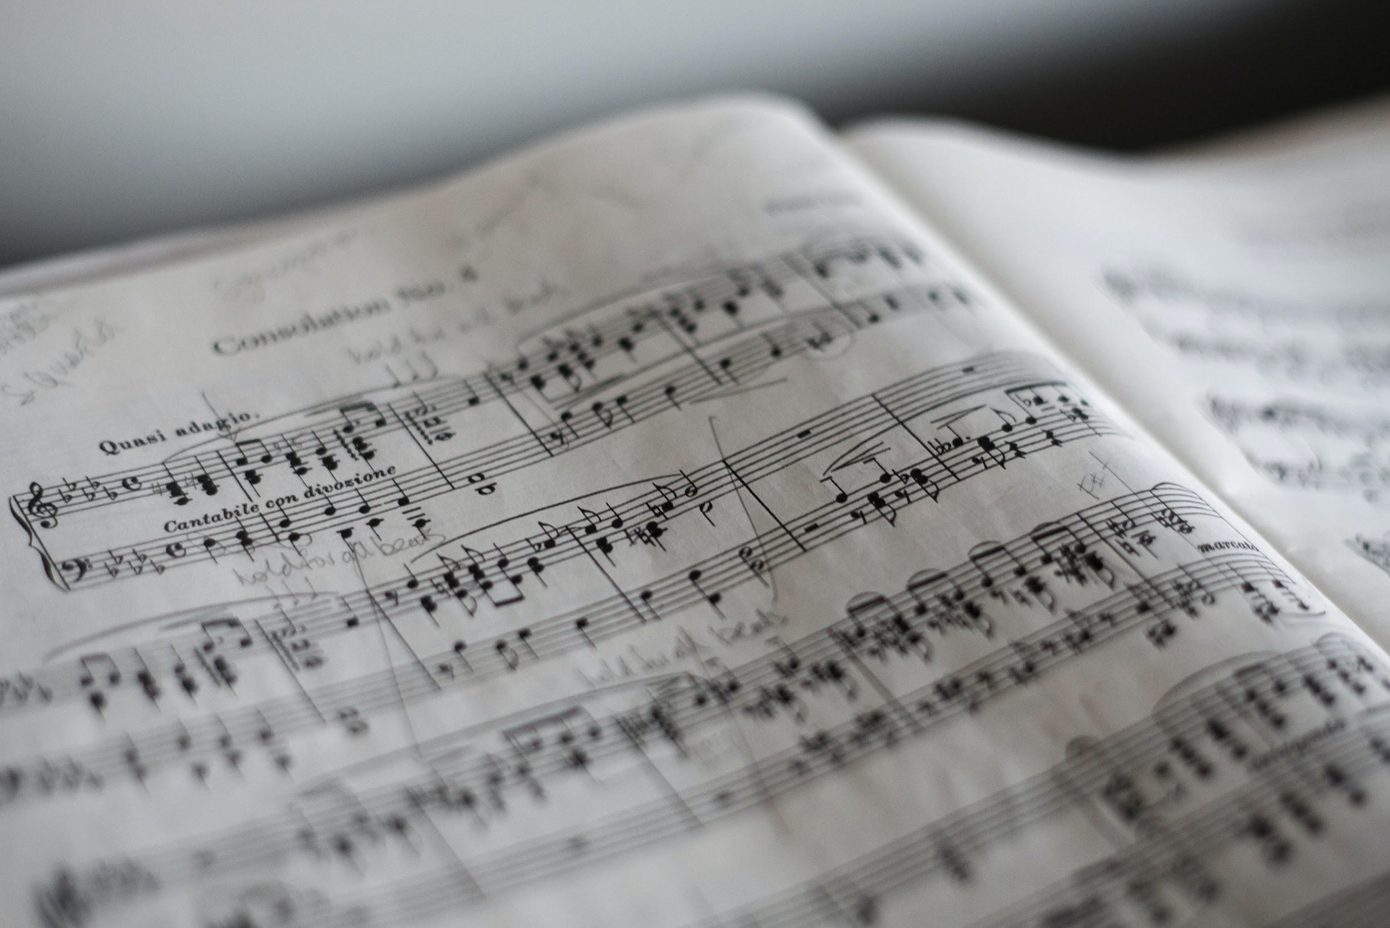 Sheet music; image by Marius Masalar, via Unsplash.com.